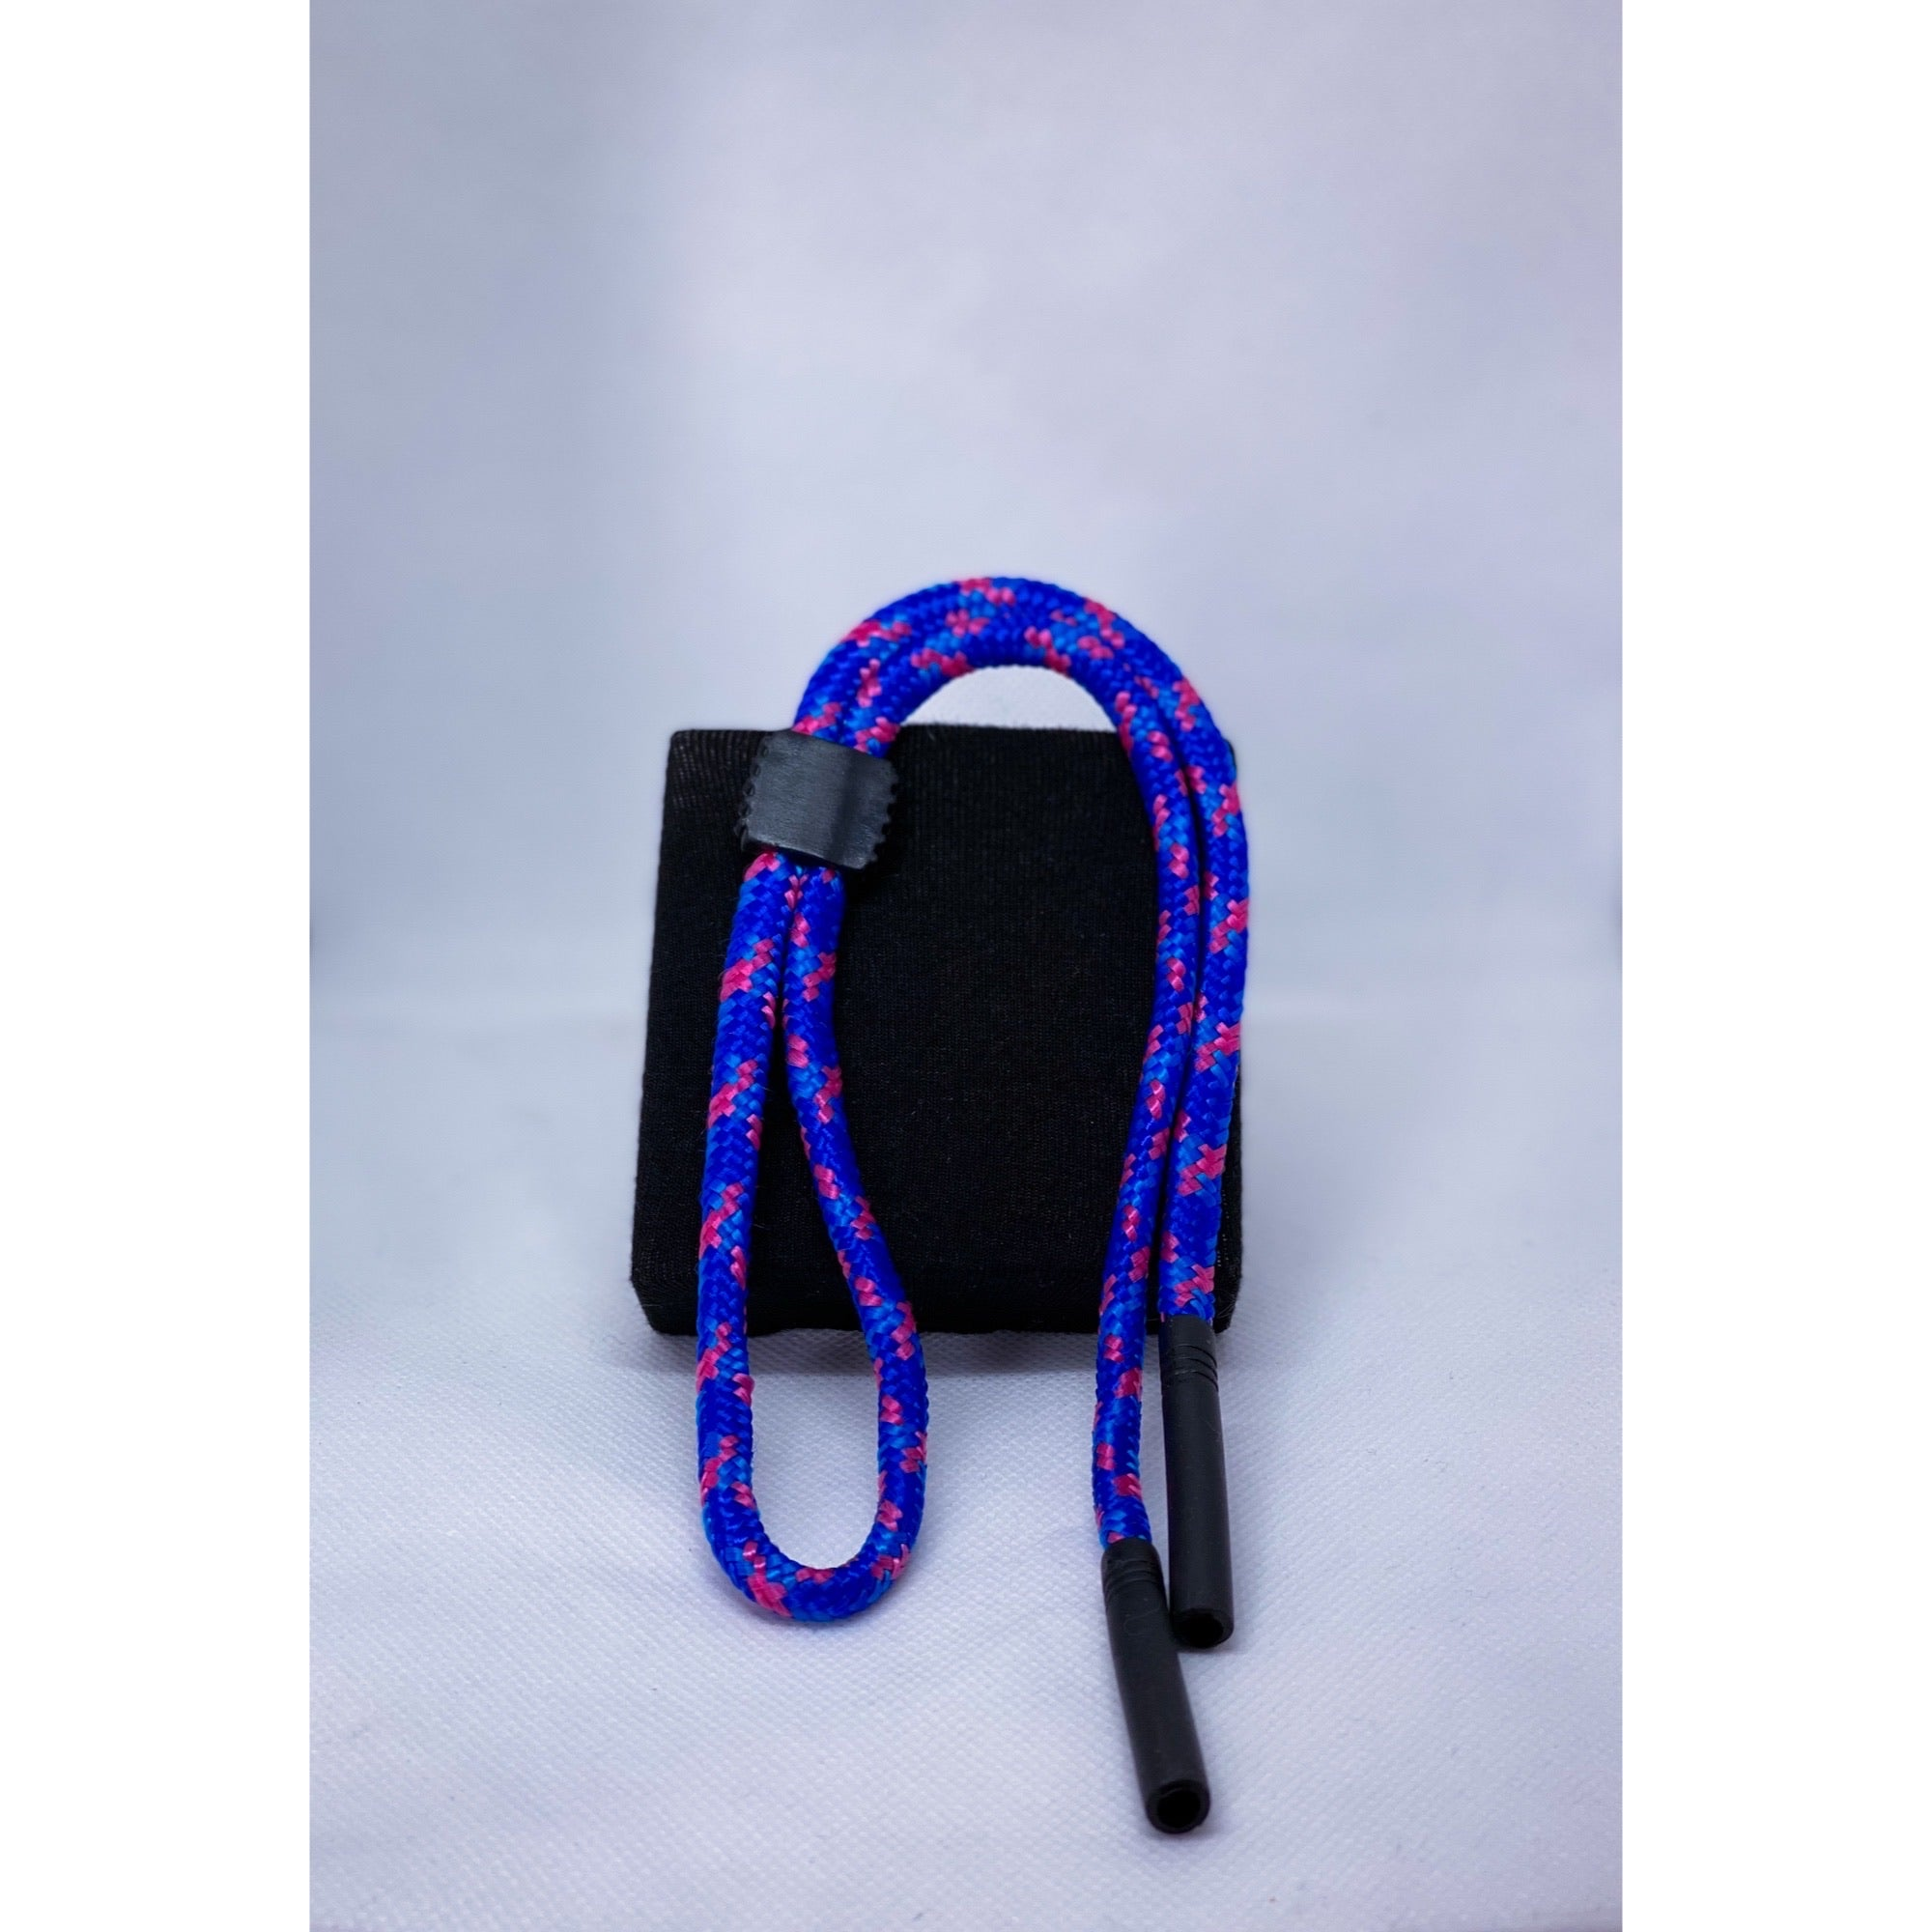 Glasses cord with adjustable strap